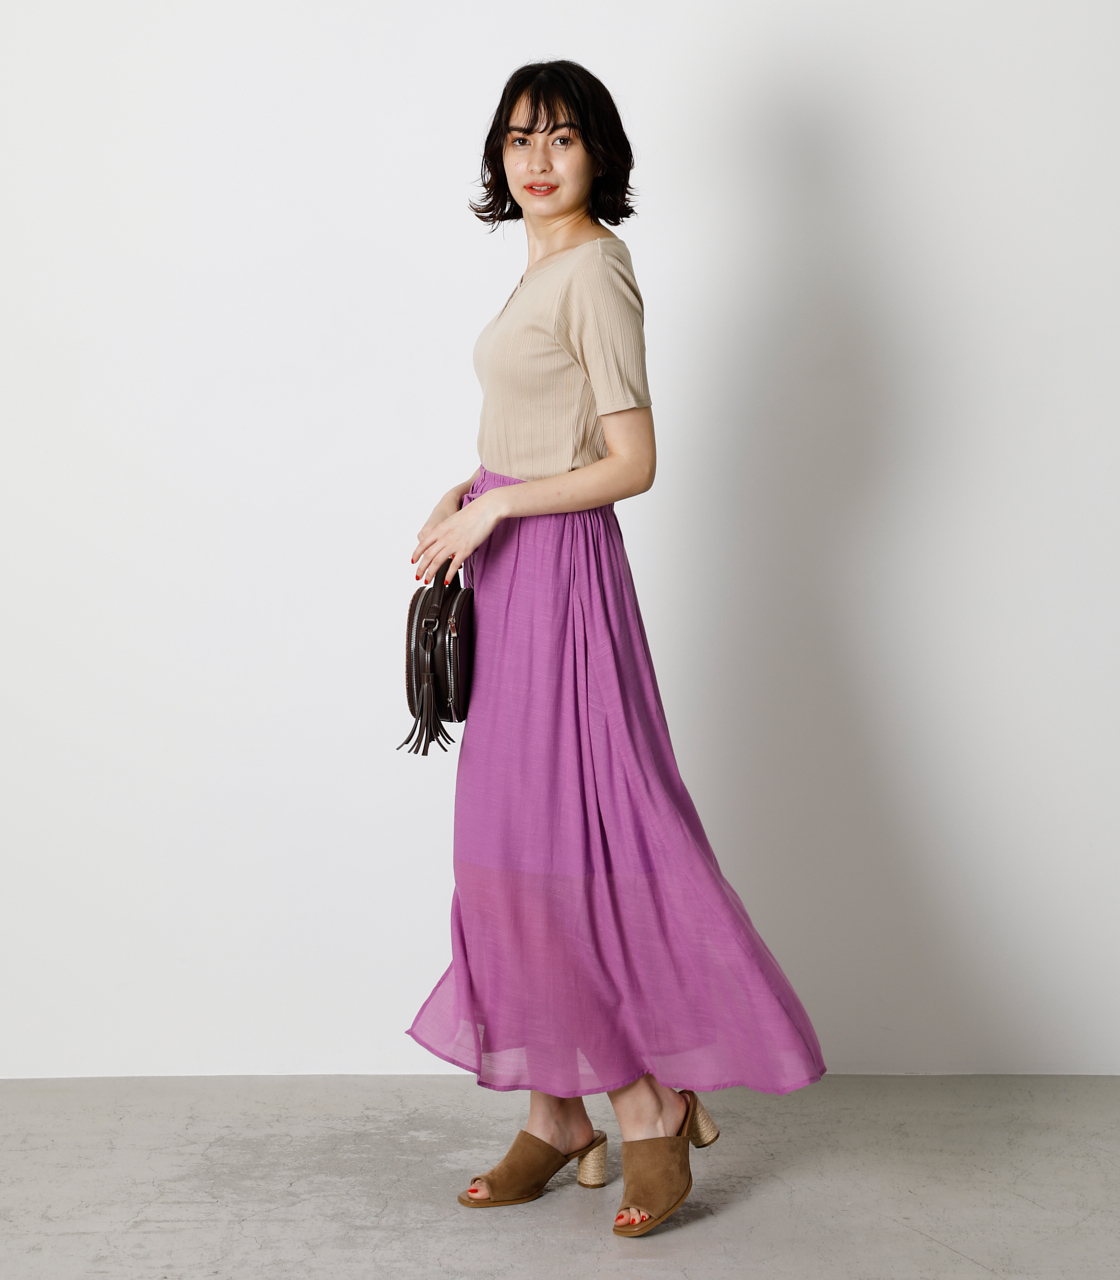 SHEER RELAX SKIRT/シアーリラックススカート 詳細画像 PUR 2